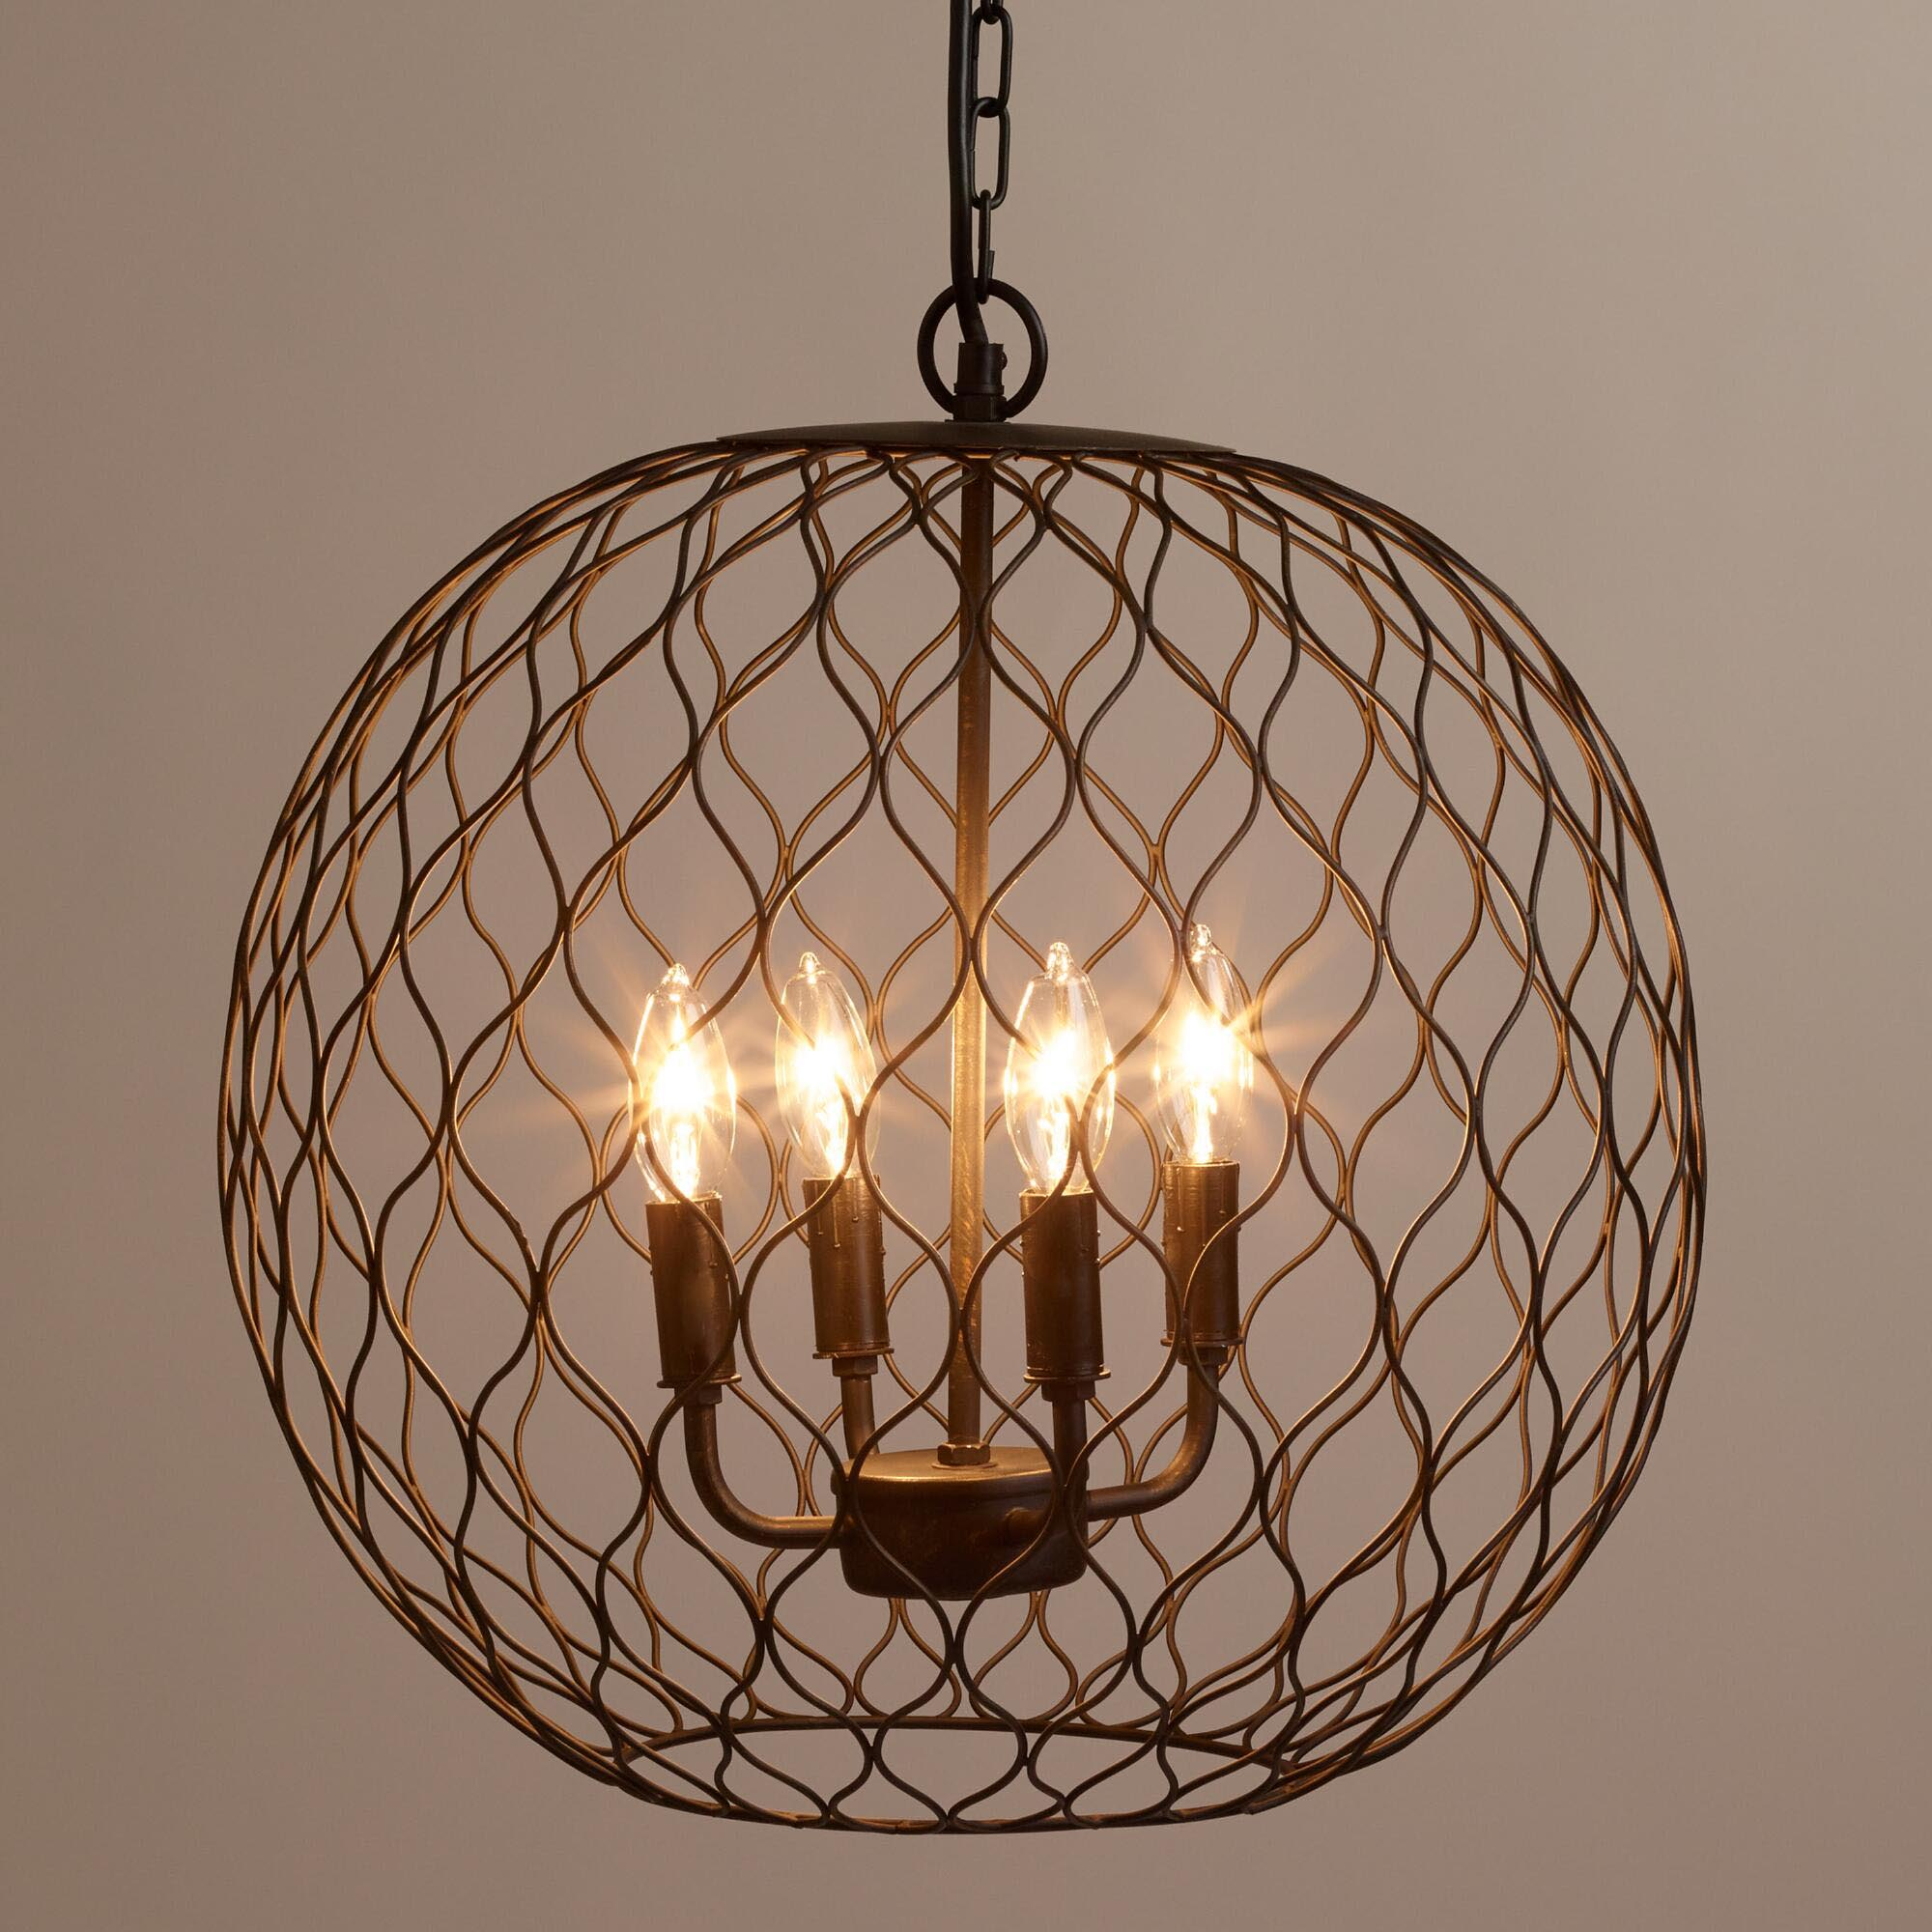 Make Your Yard and House Special with Farmhouse Light Fixtures